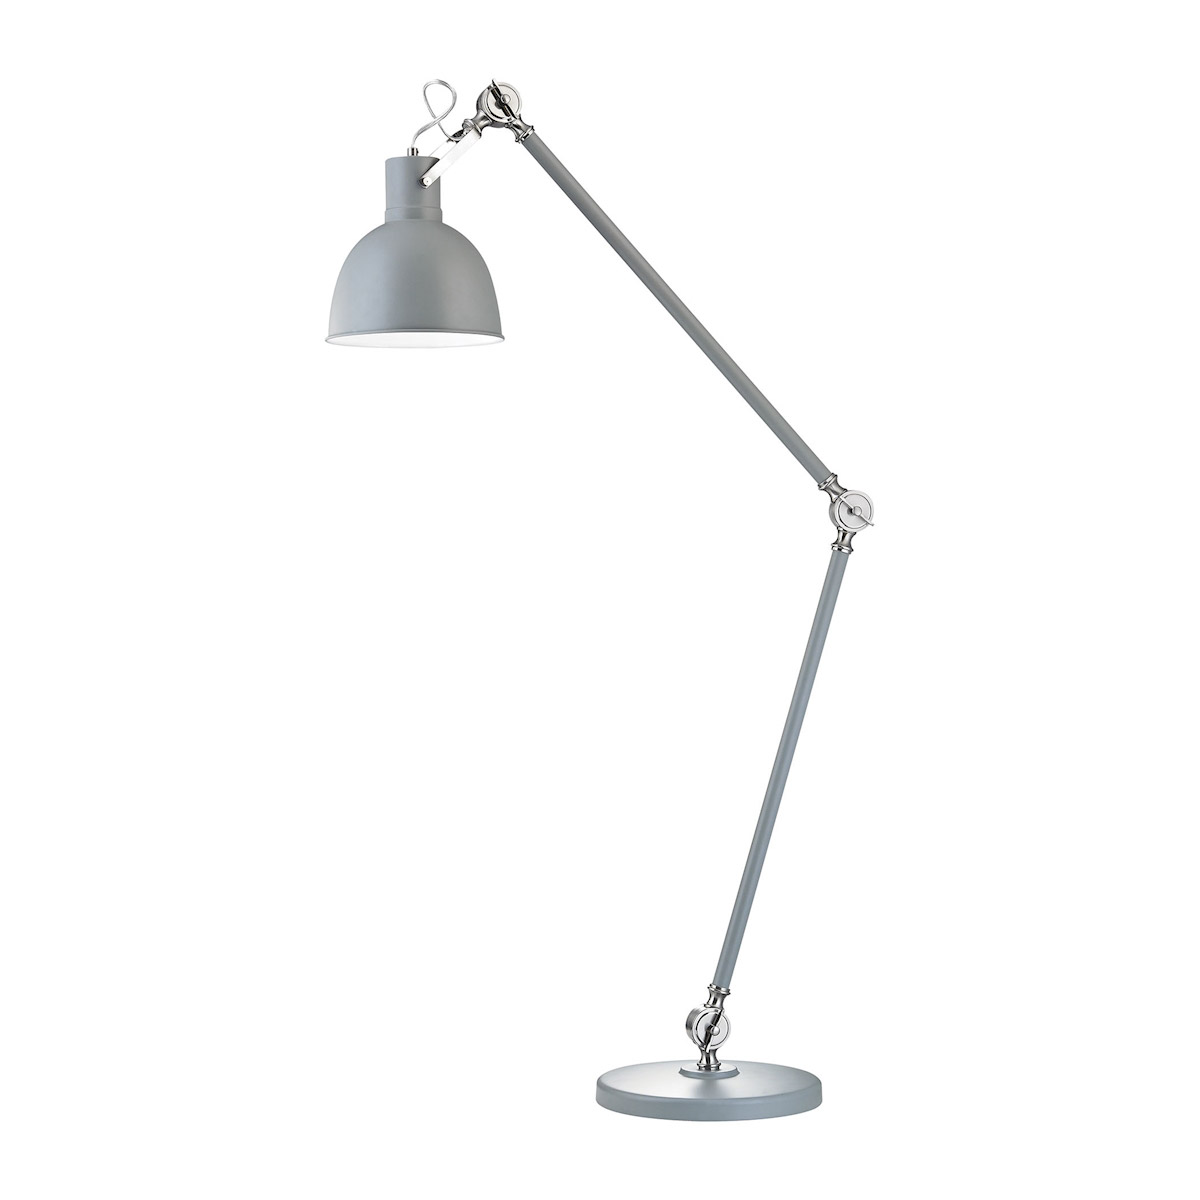 D2960 otto floor lamp dimond d2960 otto floor lamp mozeypictures Image collections